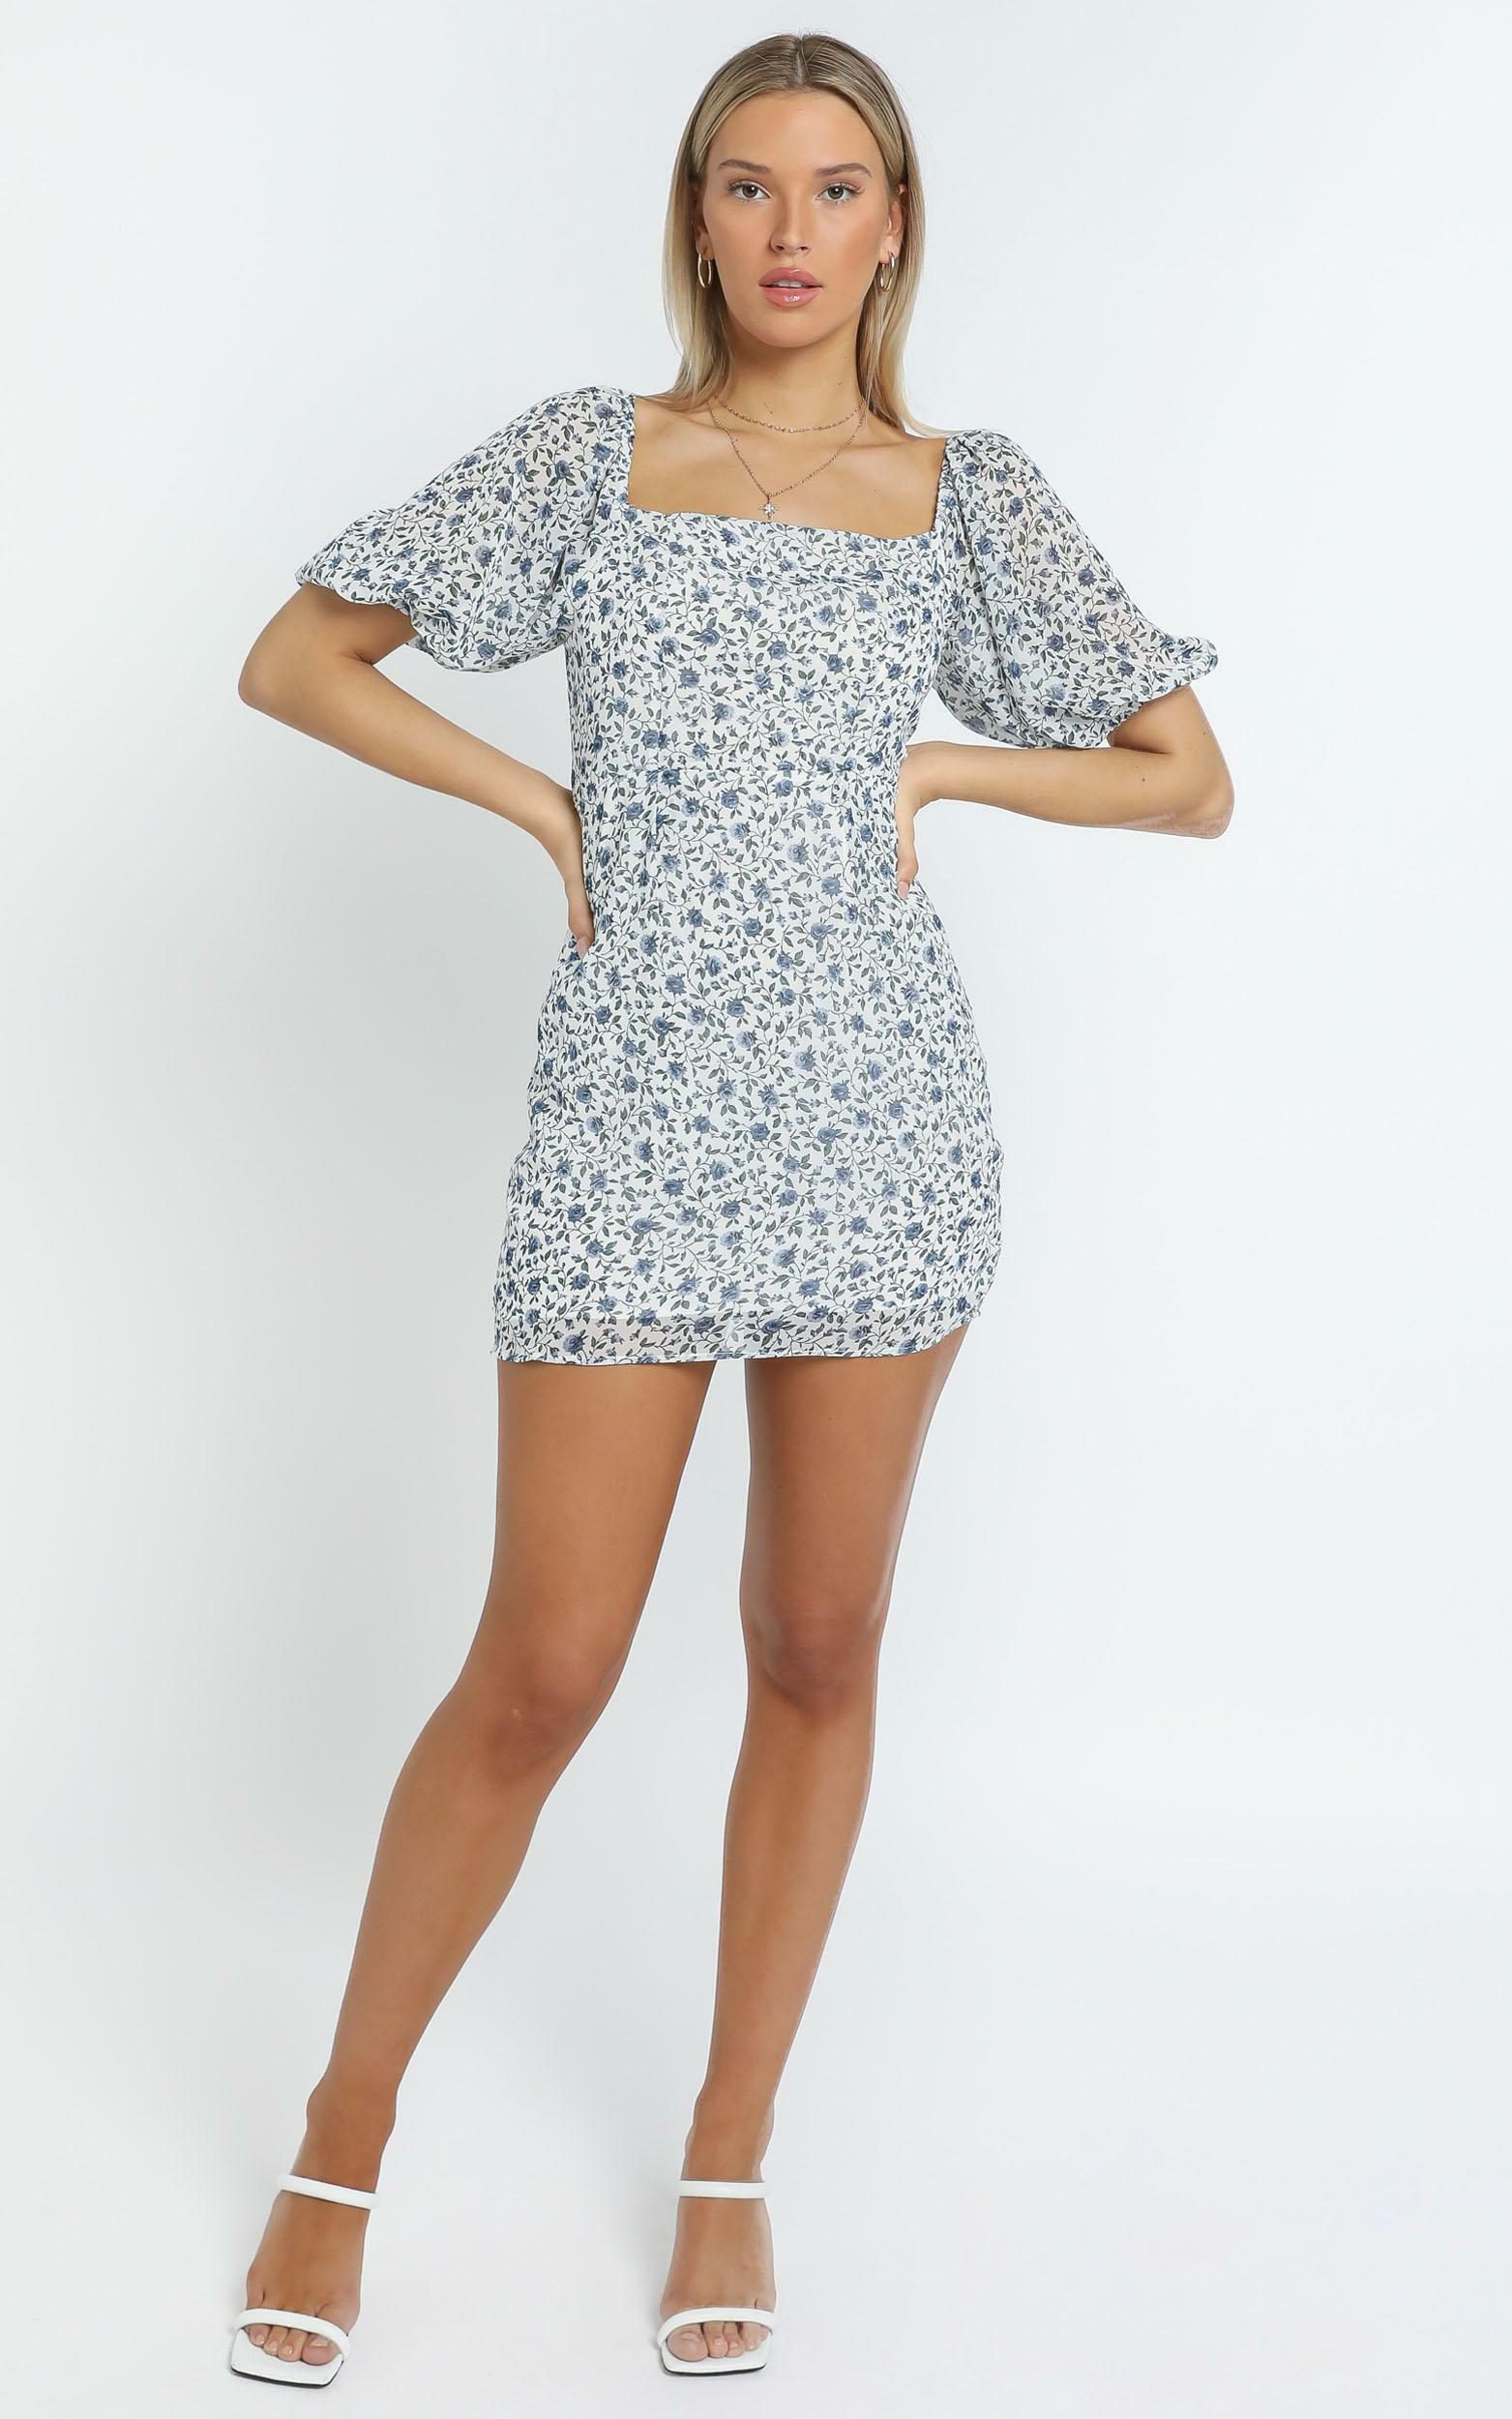 Ellia Dress in White Floral - 14 (XL), White, hi-res image number null